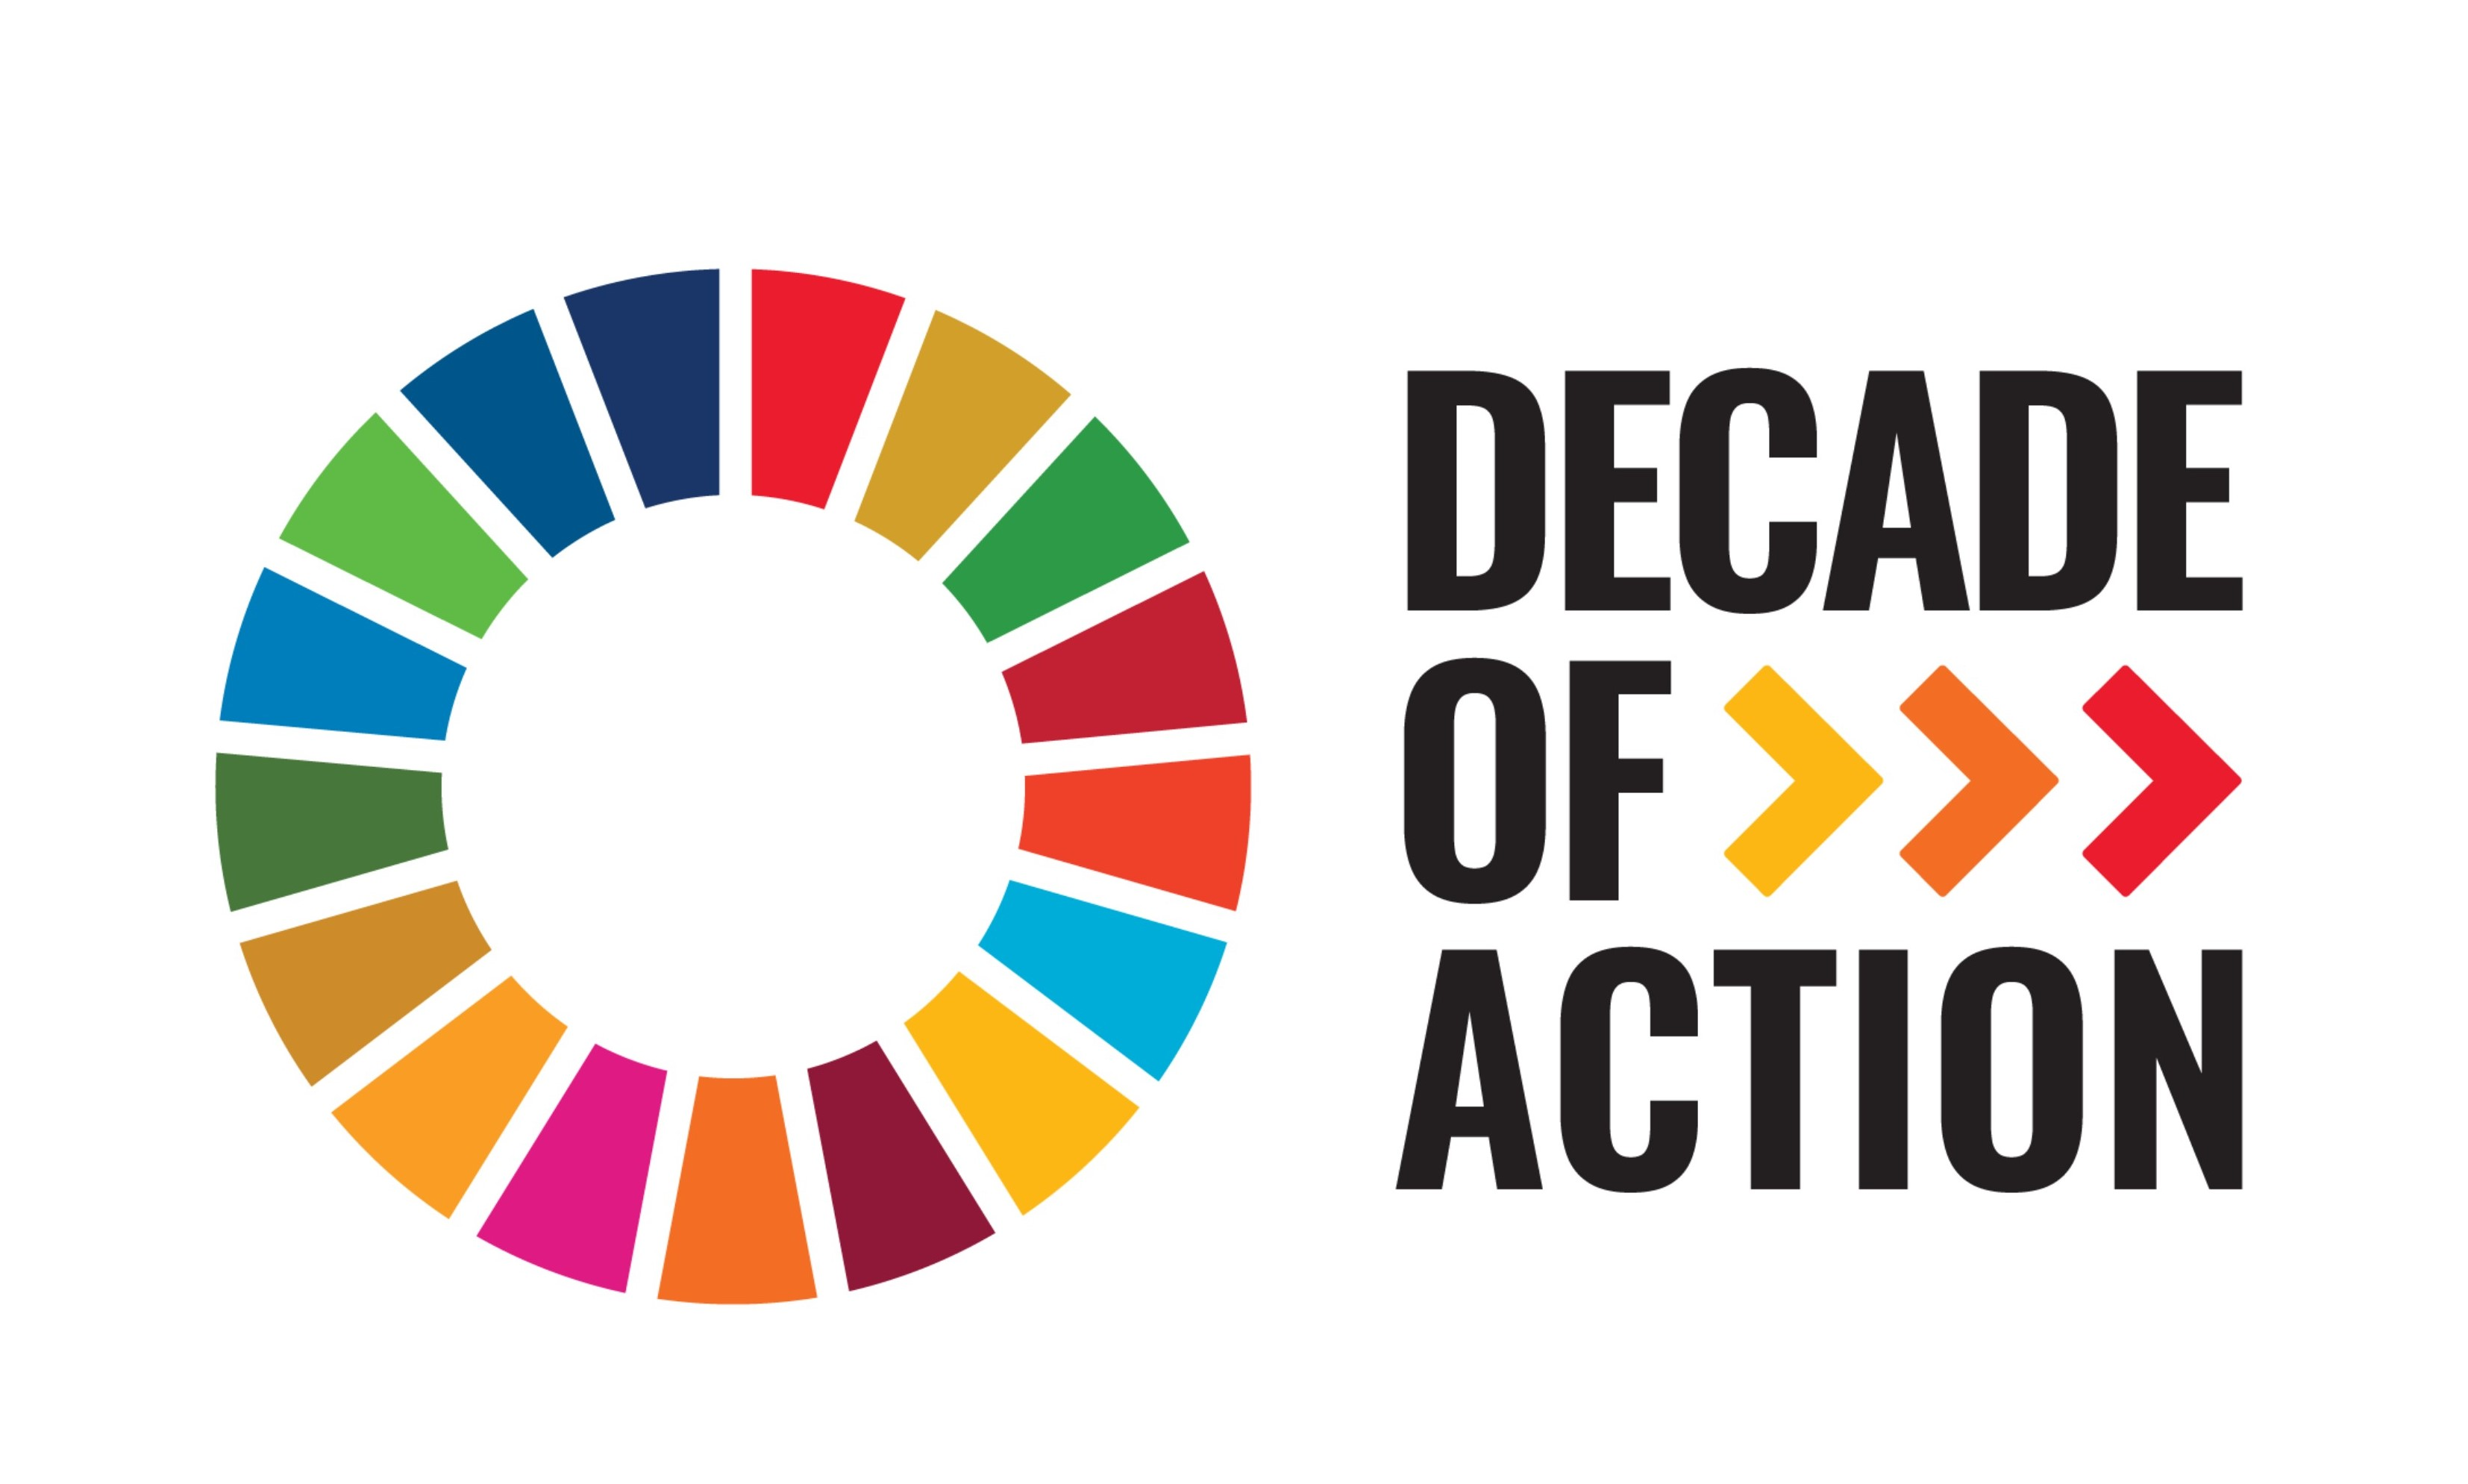 Decade of Action 1